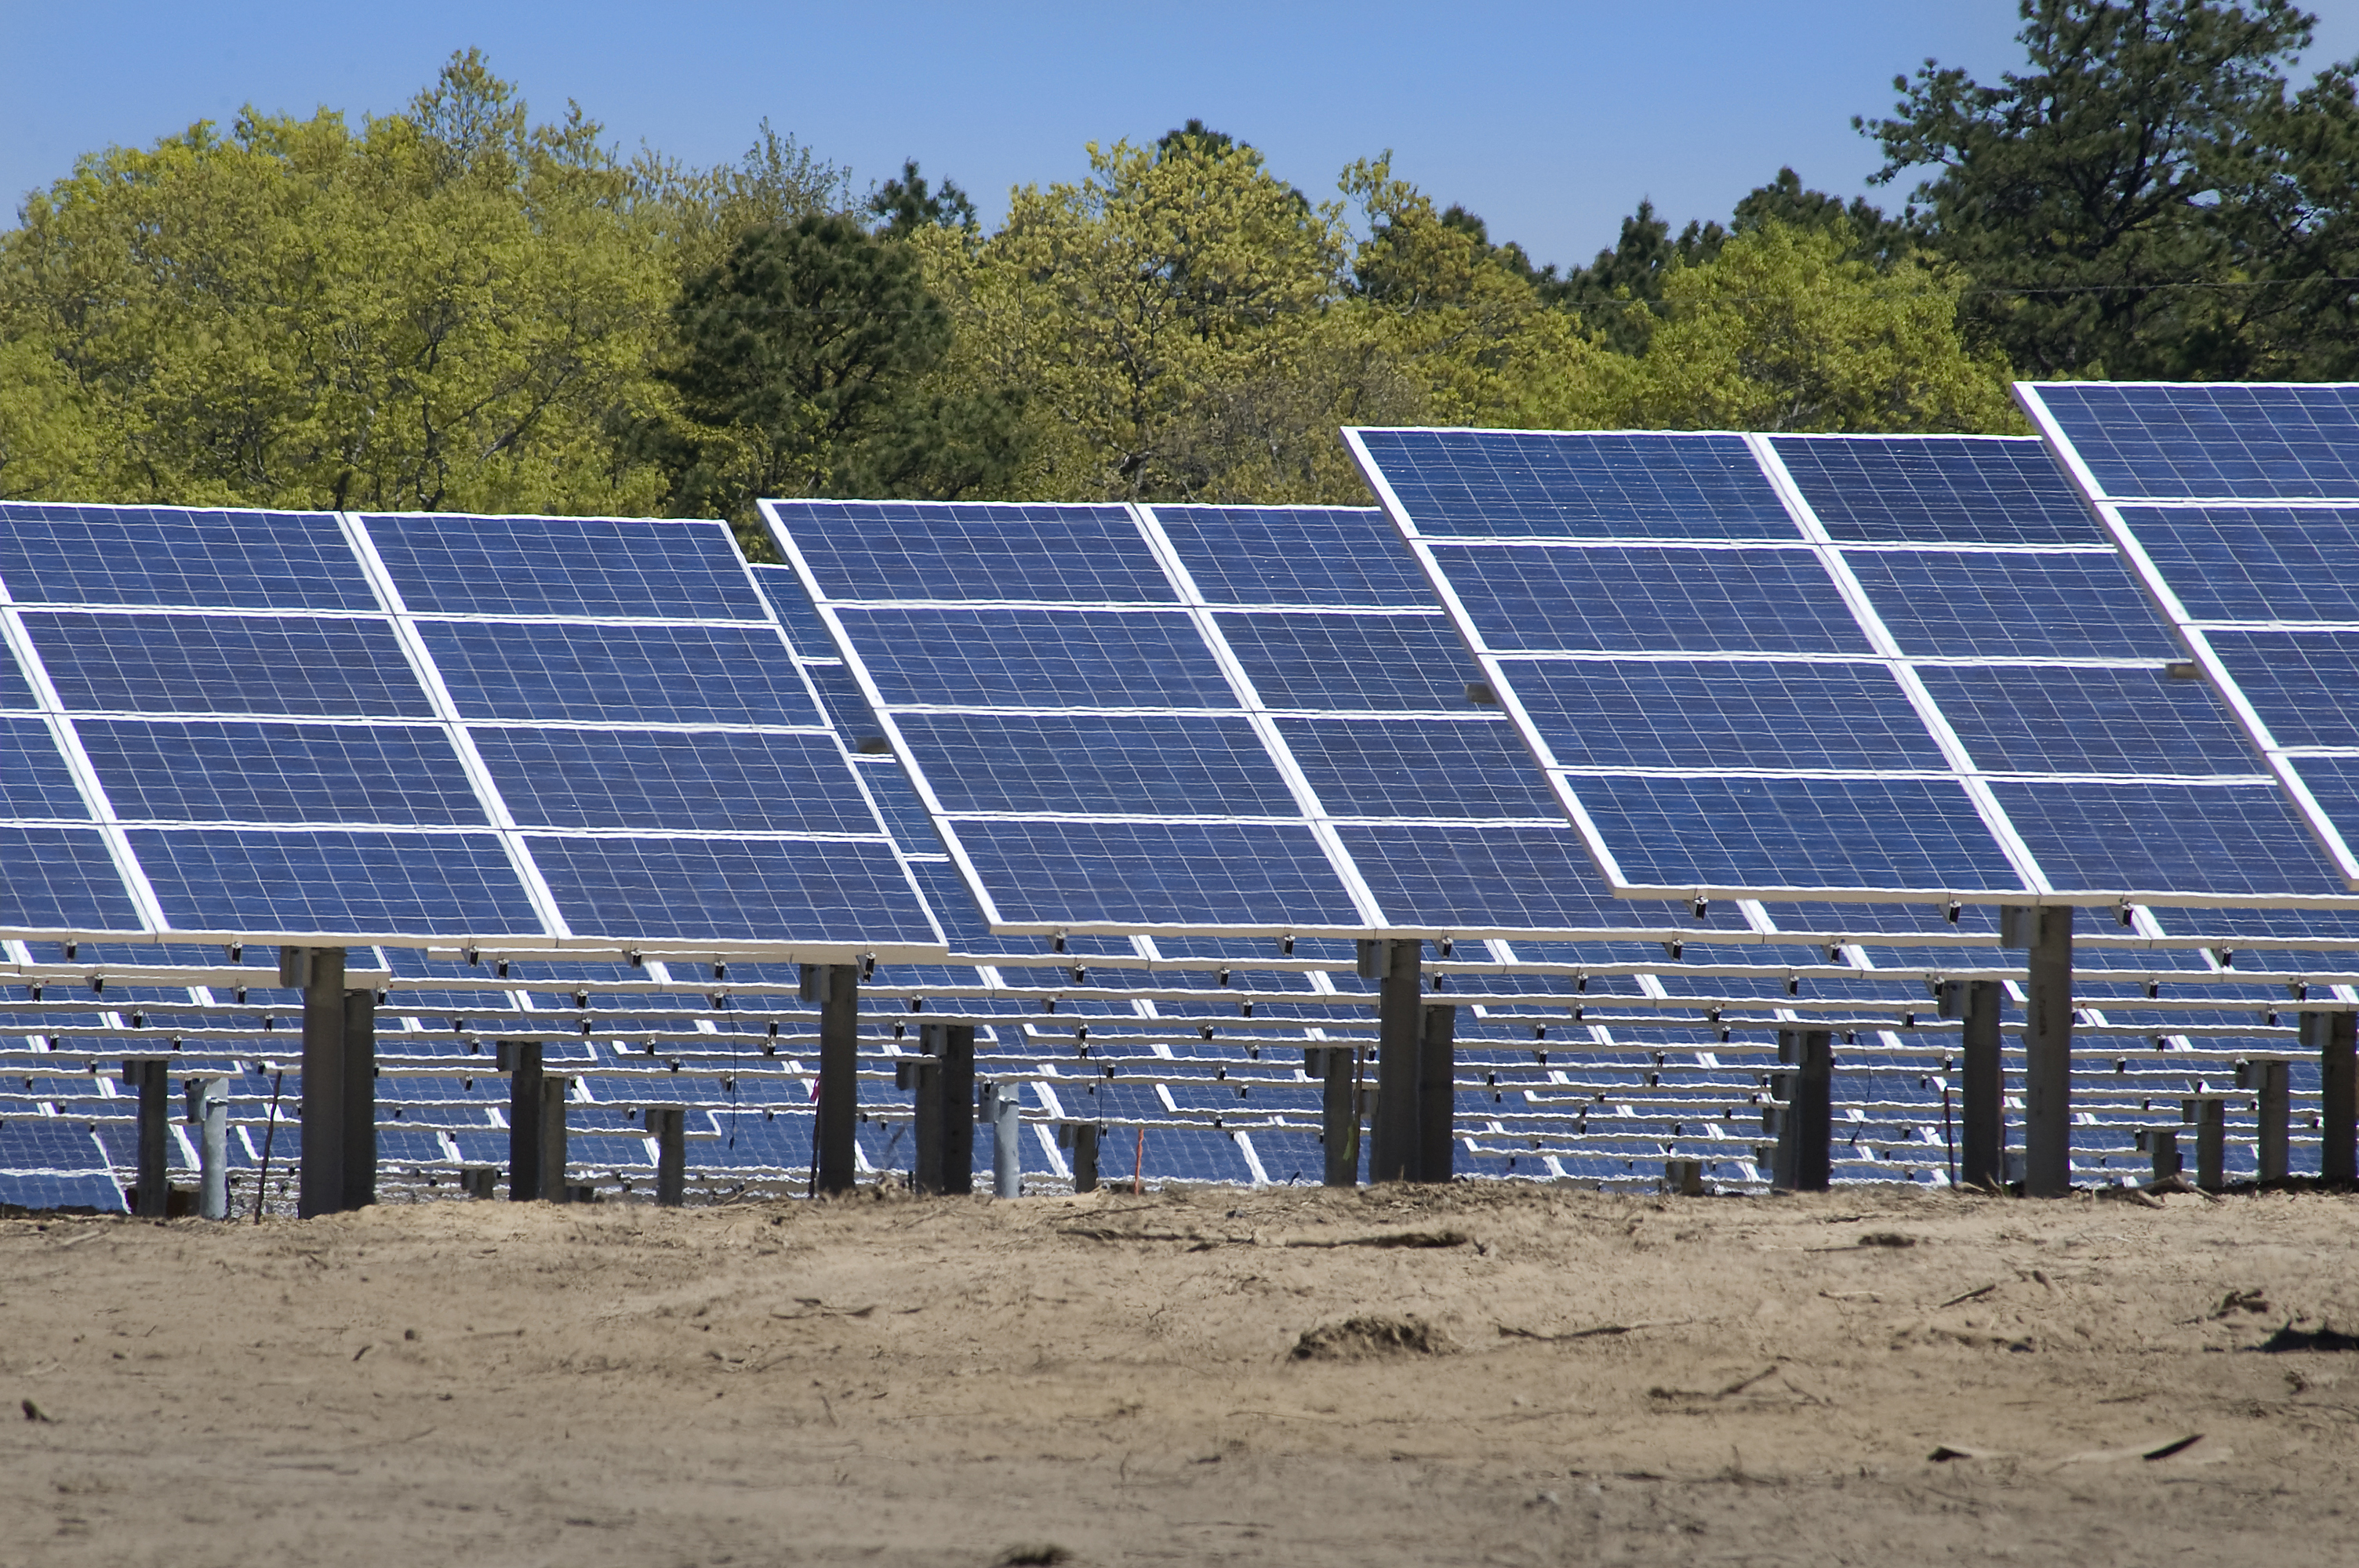 Solar Energy To Get Boost From Cutting Edge Forecasts